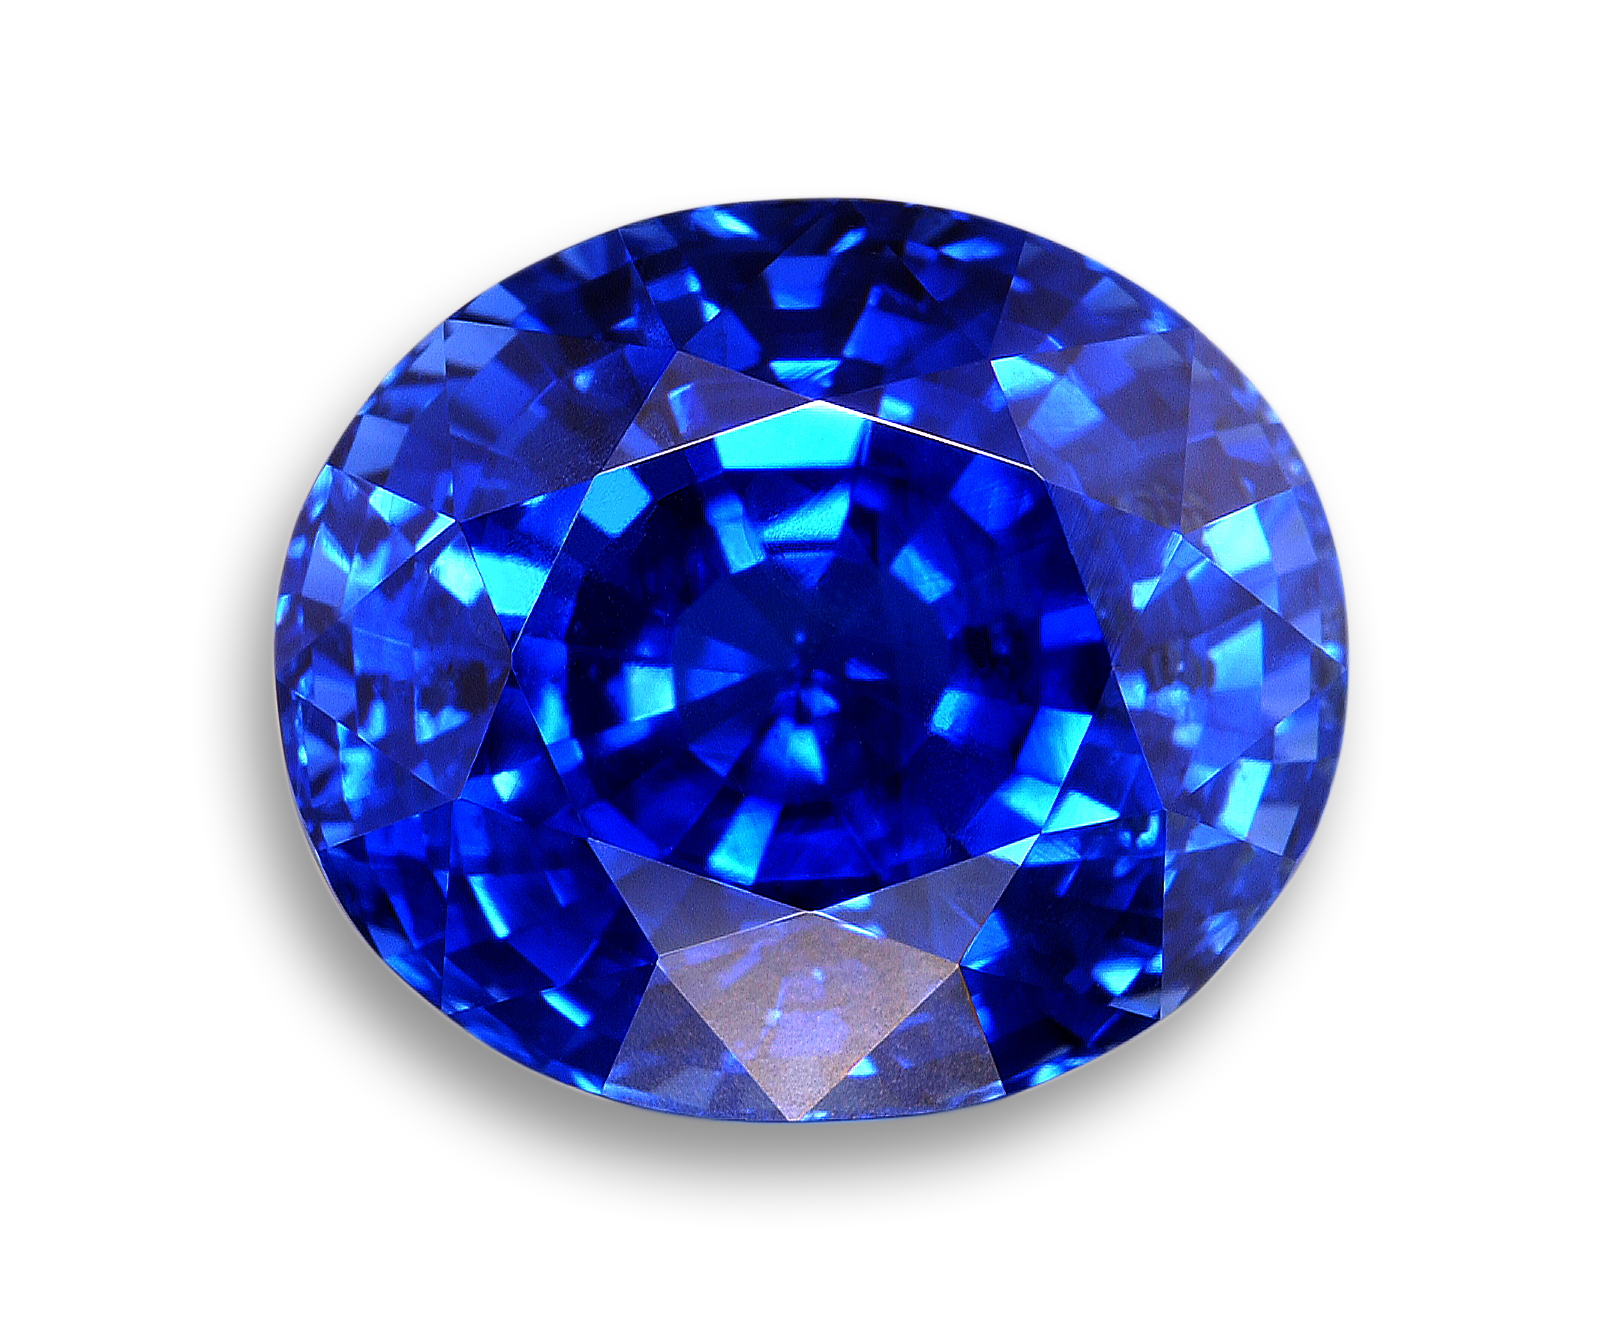 Image of Faceted Blue Sapphire | Gems | Pinterest | Gems ...